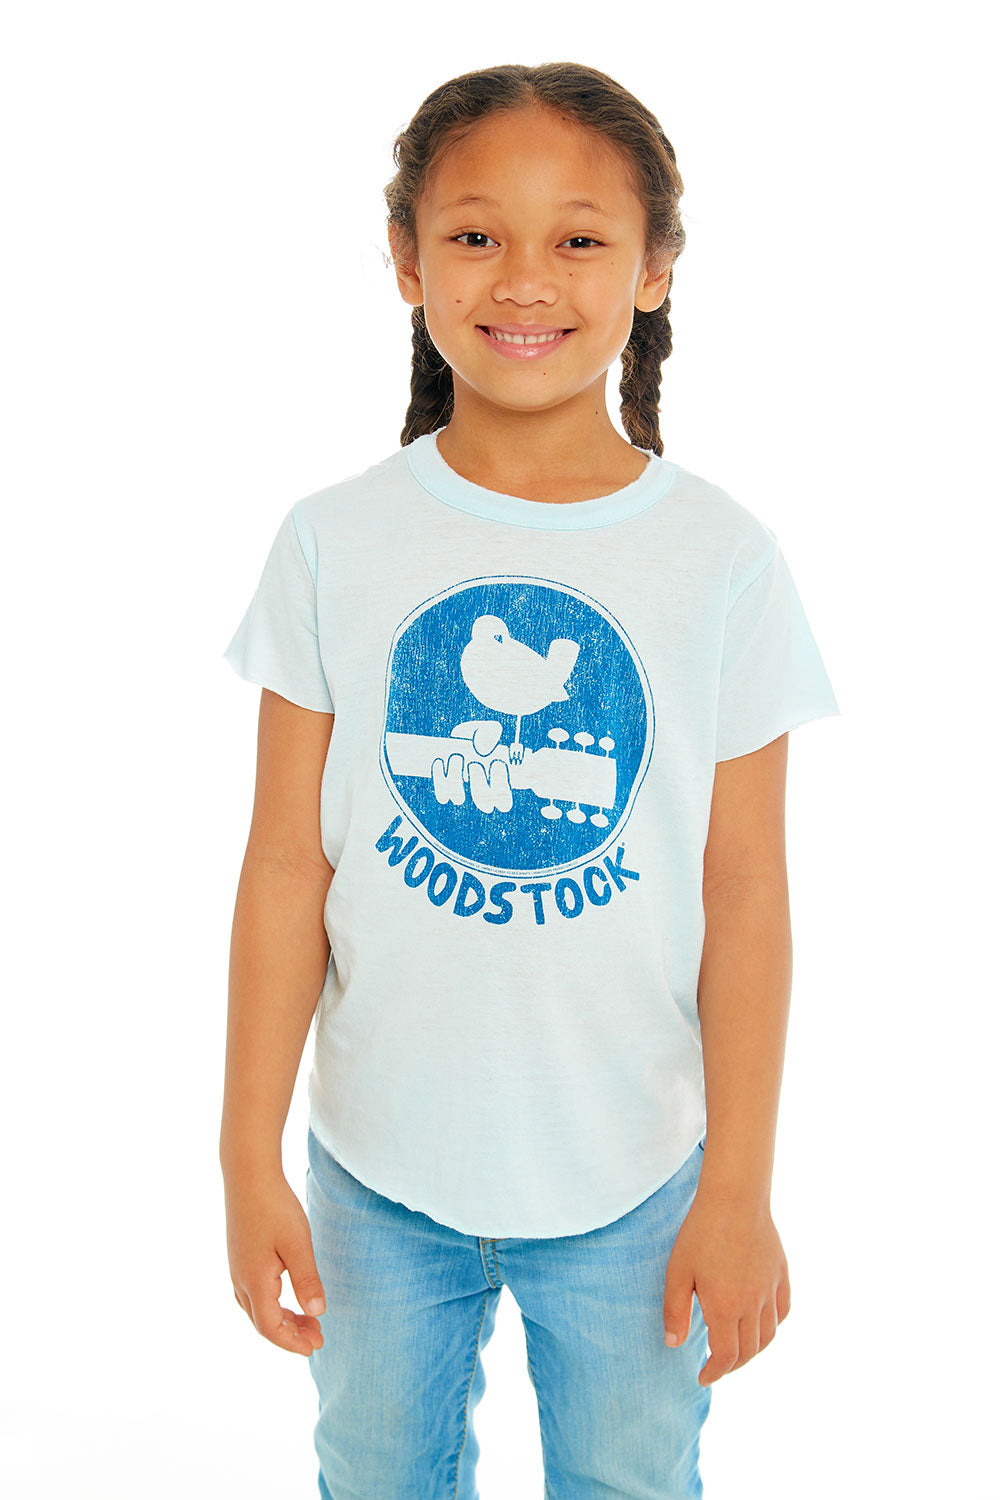 Woodstock - Classic Woodstock GIRLS chaserbrand4.myshopify.com